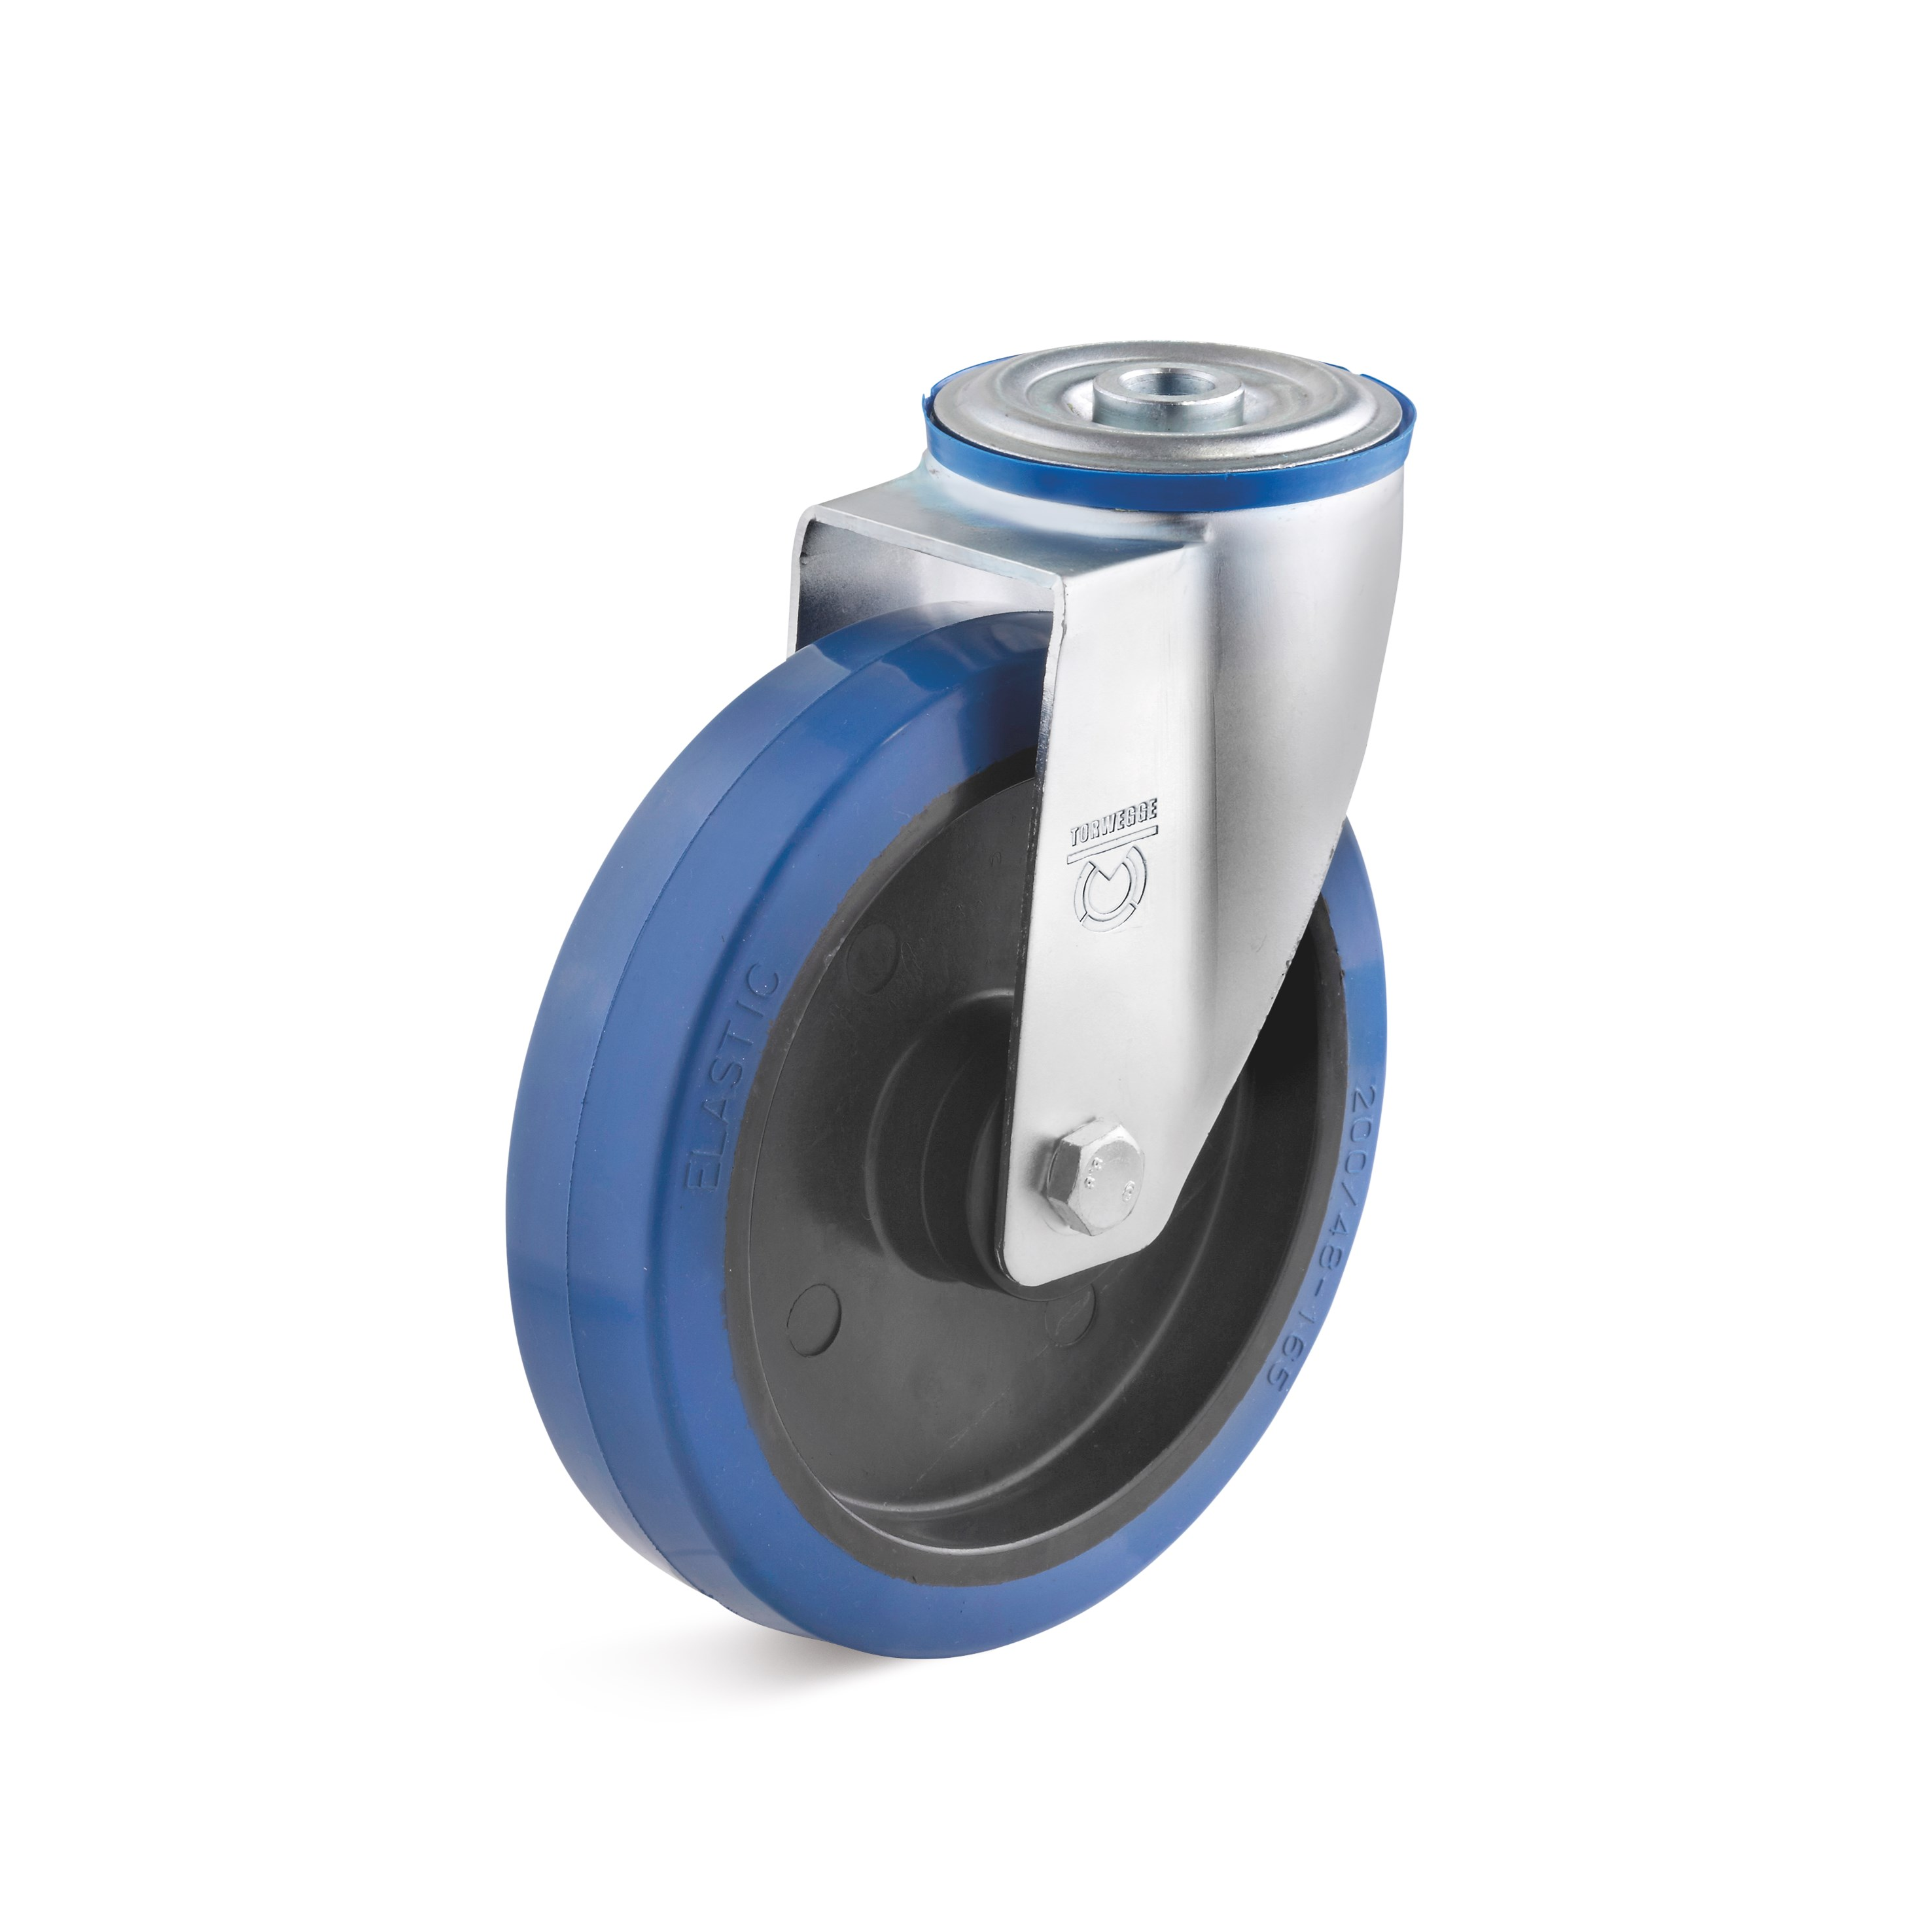 Swivel castor with back hole and elastic solid rubber wheel